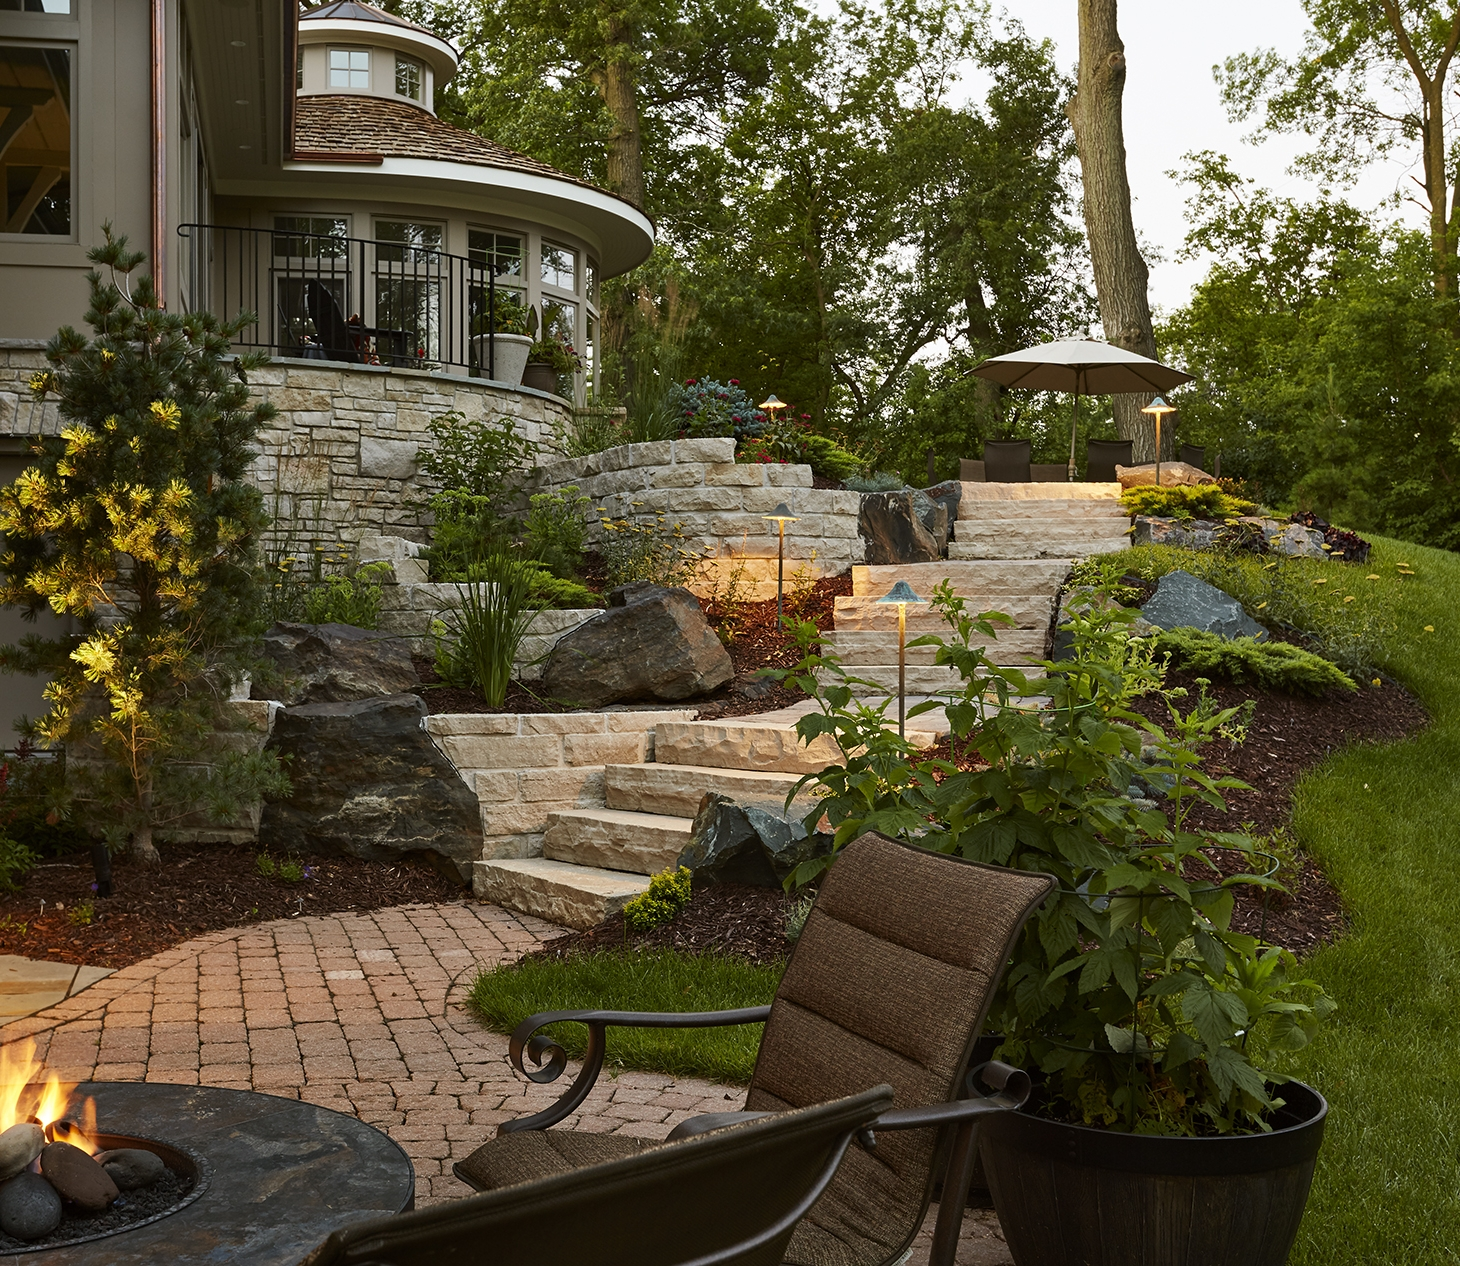 A space to sit and enjoy the fire, with a view of the beautiful landscape and Minnehaha creek.